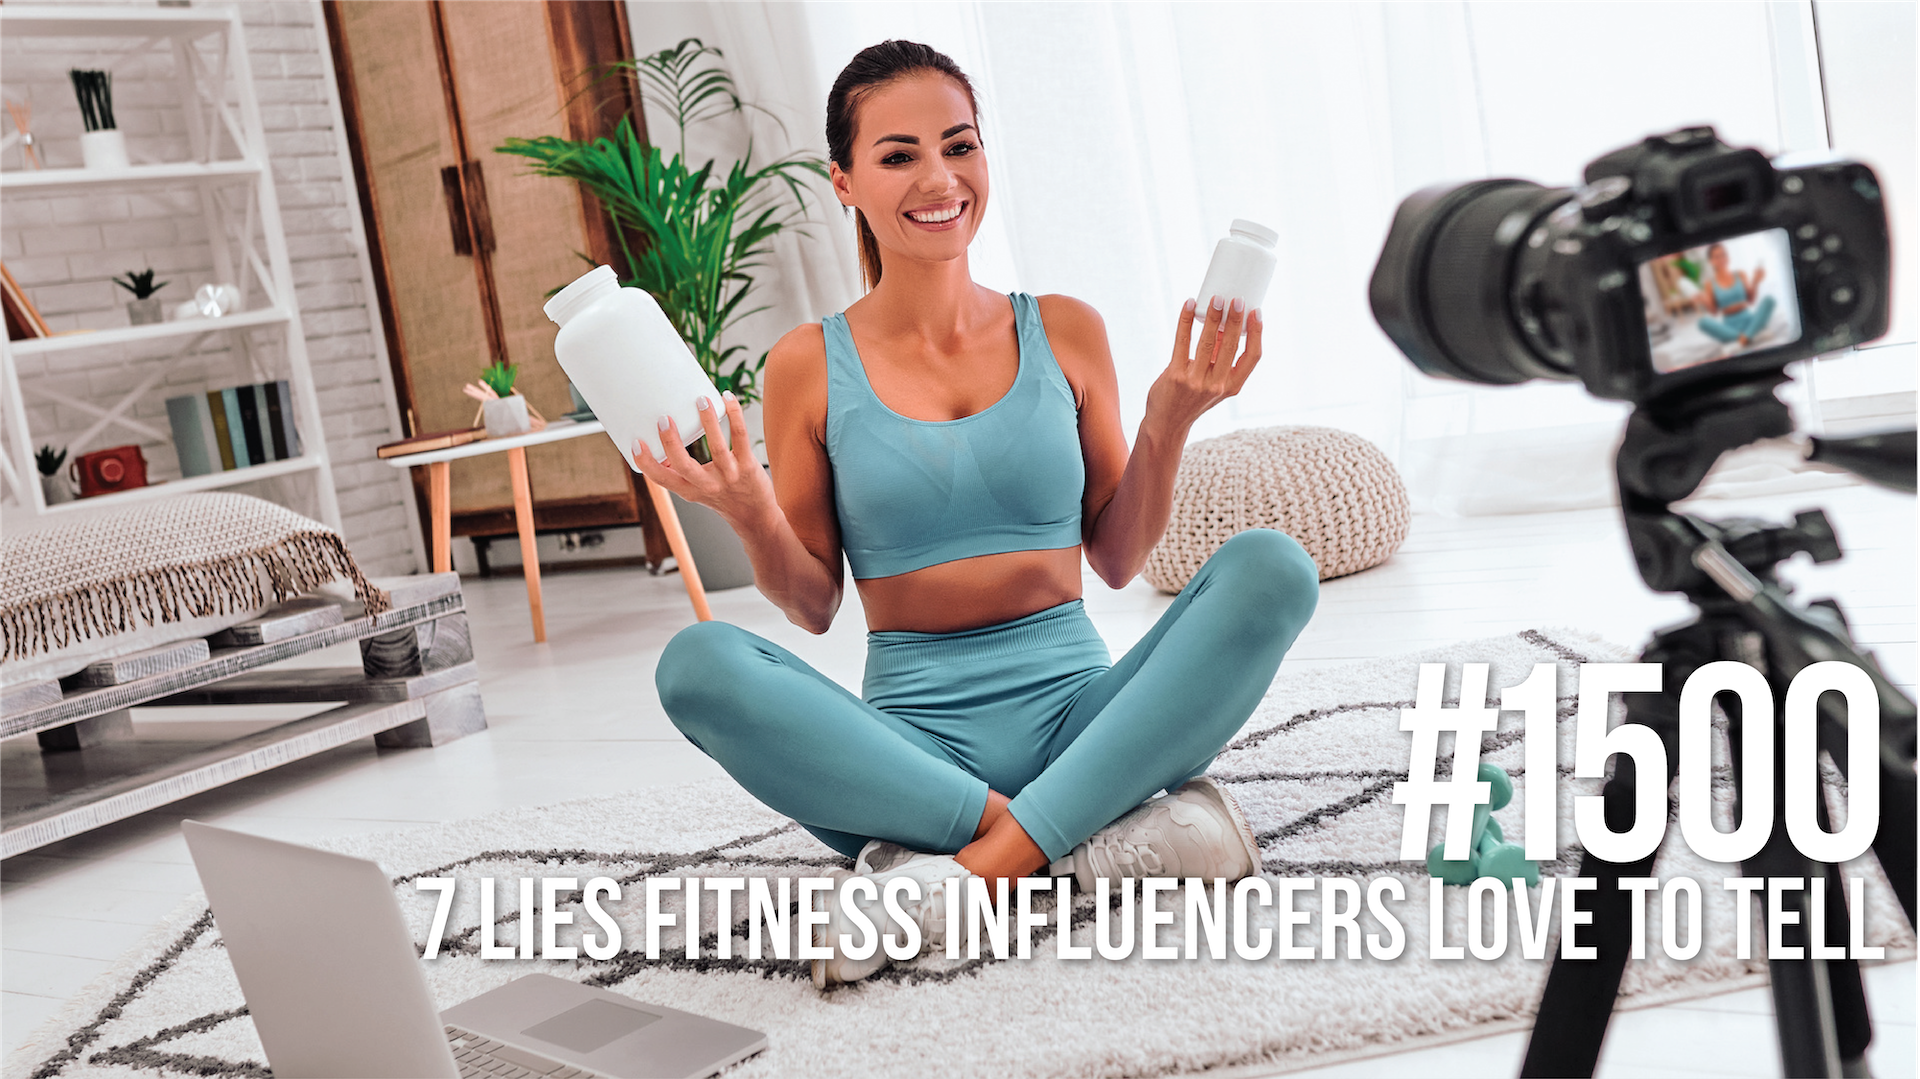 1500: Seven Lies Fitness Influencers Love to Tell